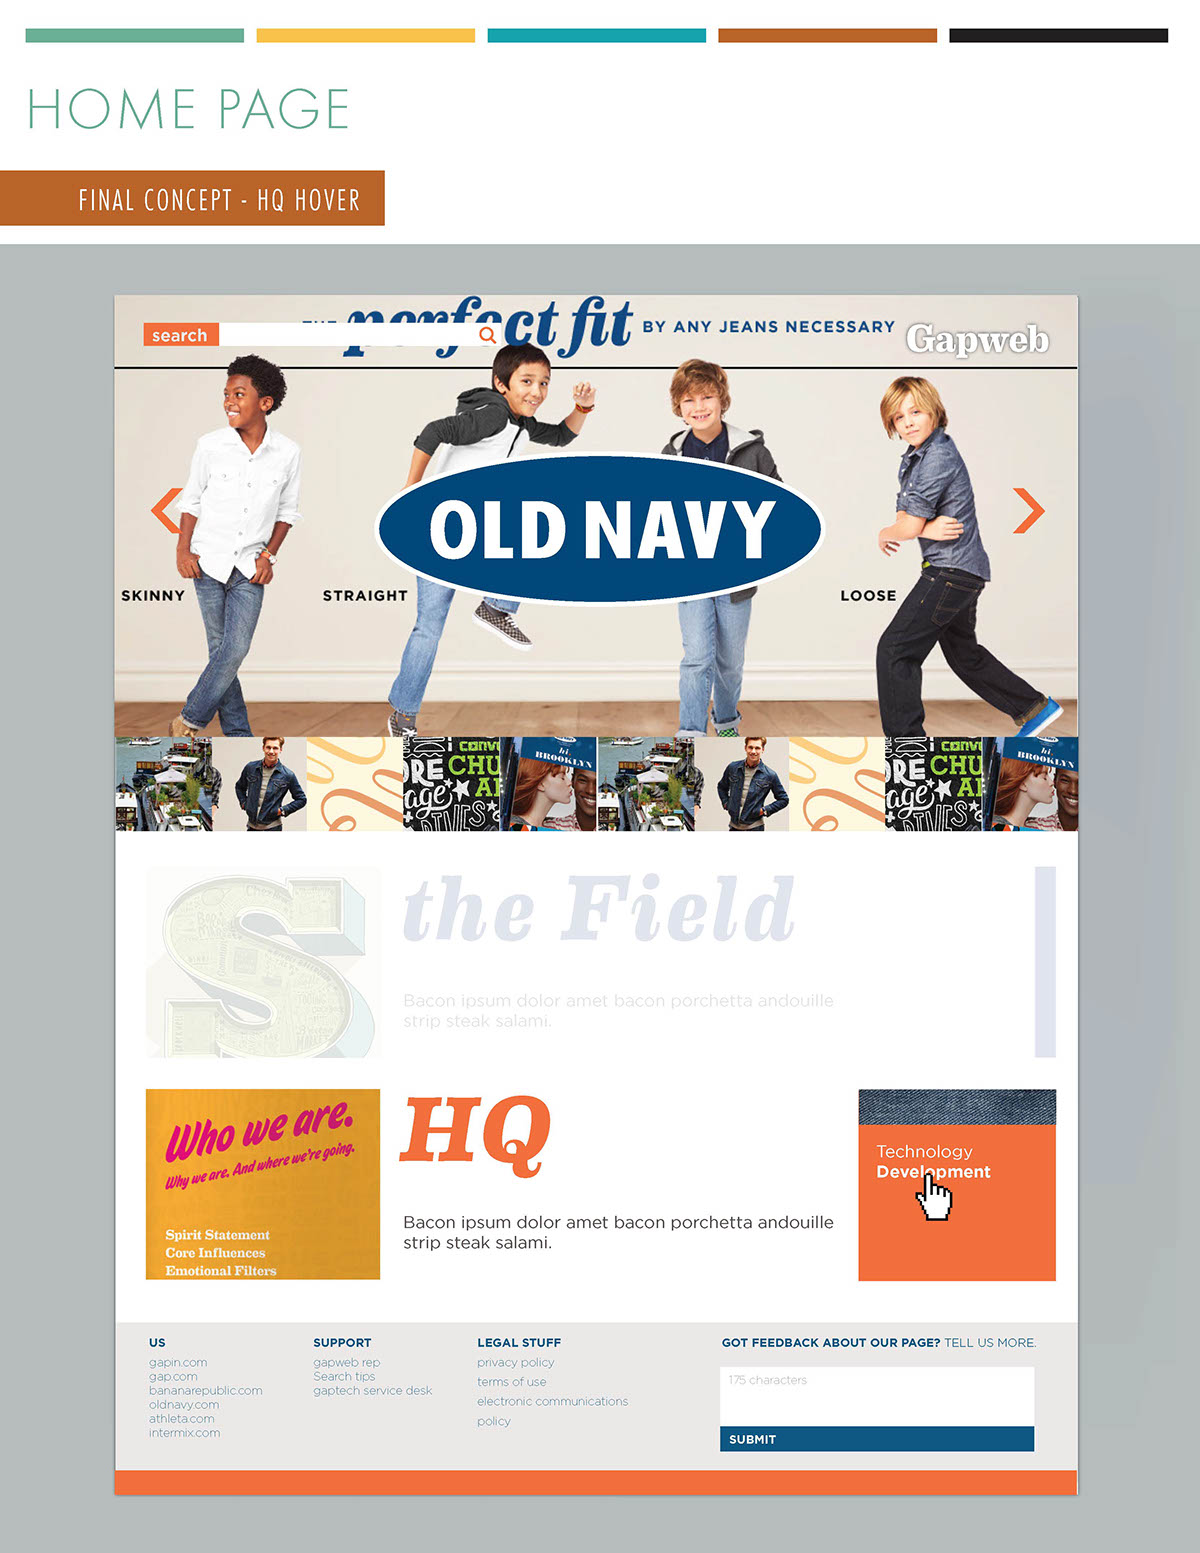 Old Navy Logo for the Family Sports Fan Central Shop By Size Categories. Shop By Size Old Navy Active Categories. Activewear by Style Activewear Tops Activewear Bottoms Shop by Category Categories. Graphic Tees Tees & Tops Shirts & Blouses Sweaters Dresses & Jumpsuits.